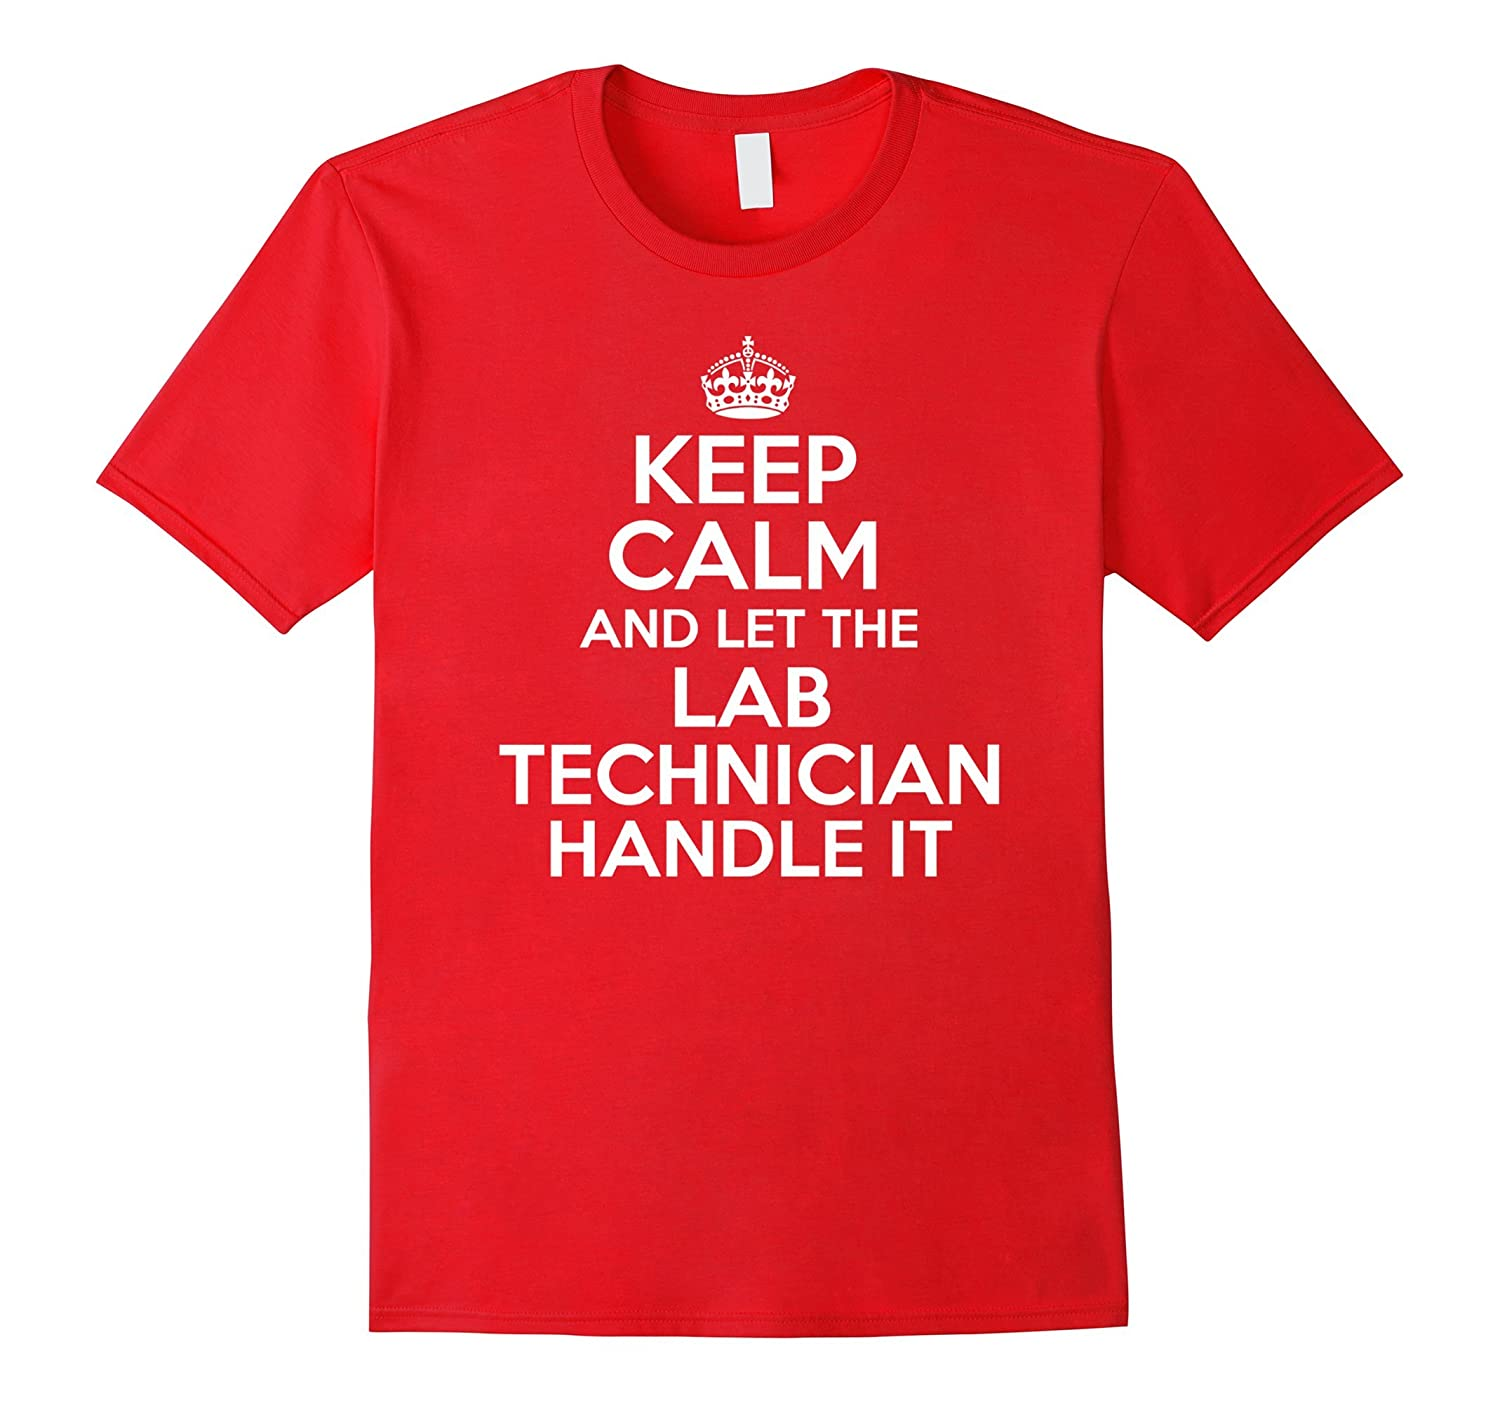 Keep calm and let the LAB TECHNICIAN handle it-PL